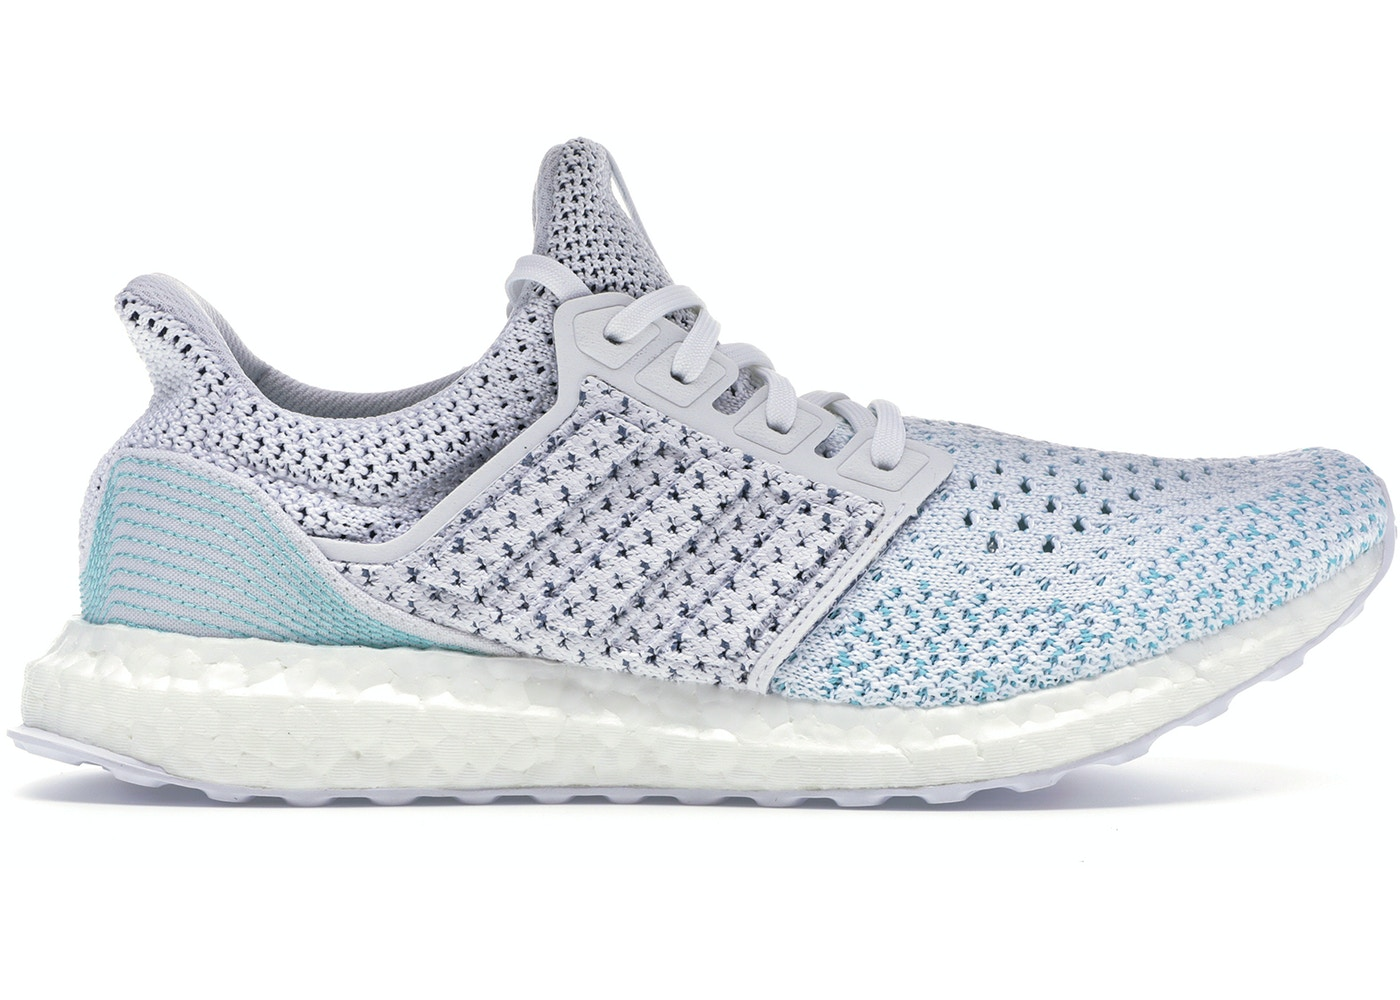 1d532071d580f adidas Ultra Boost Clima Parley White Blue - BB7076